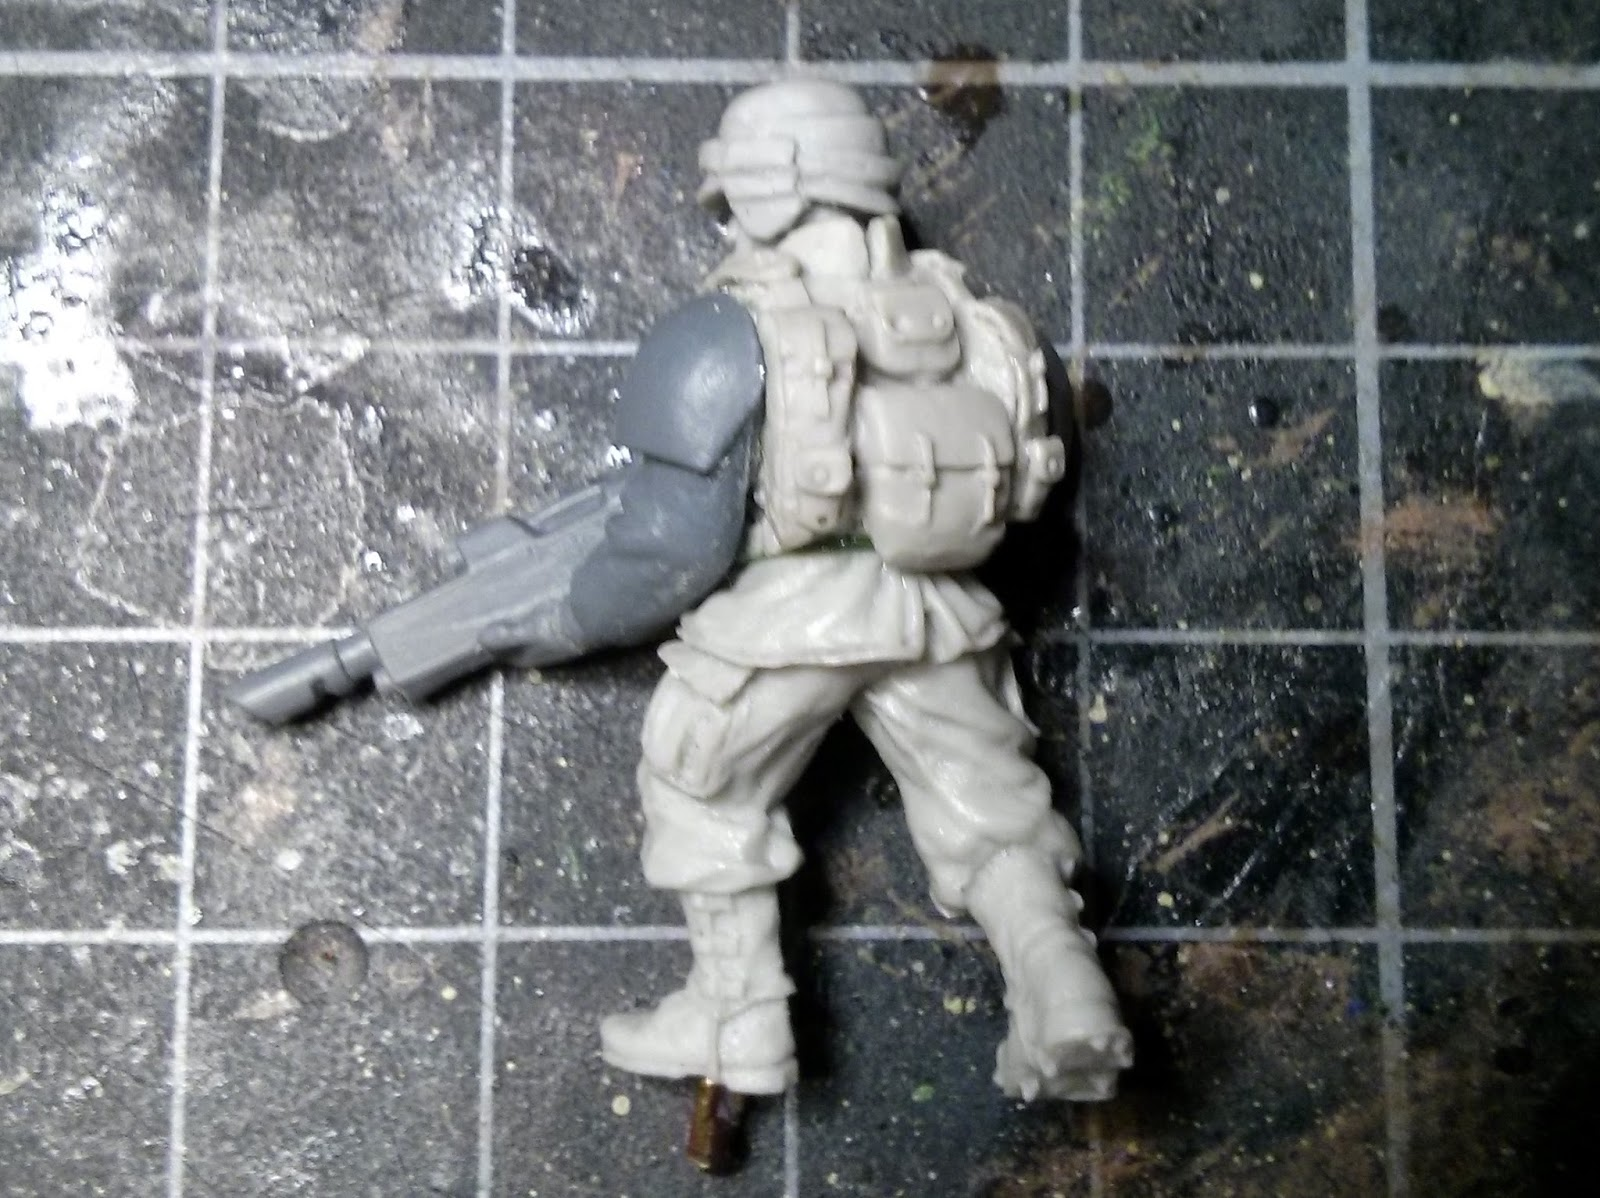 Imperial Guard, Cadian, Maxmini, Combat Armour, Victoria Miniatures, Arcadian, Conversion